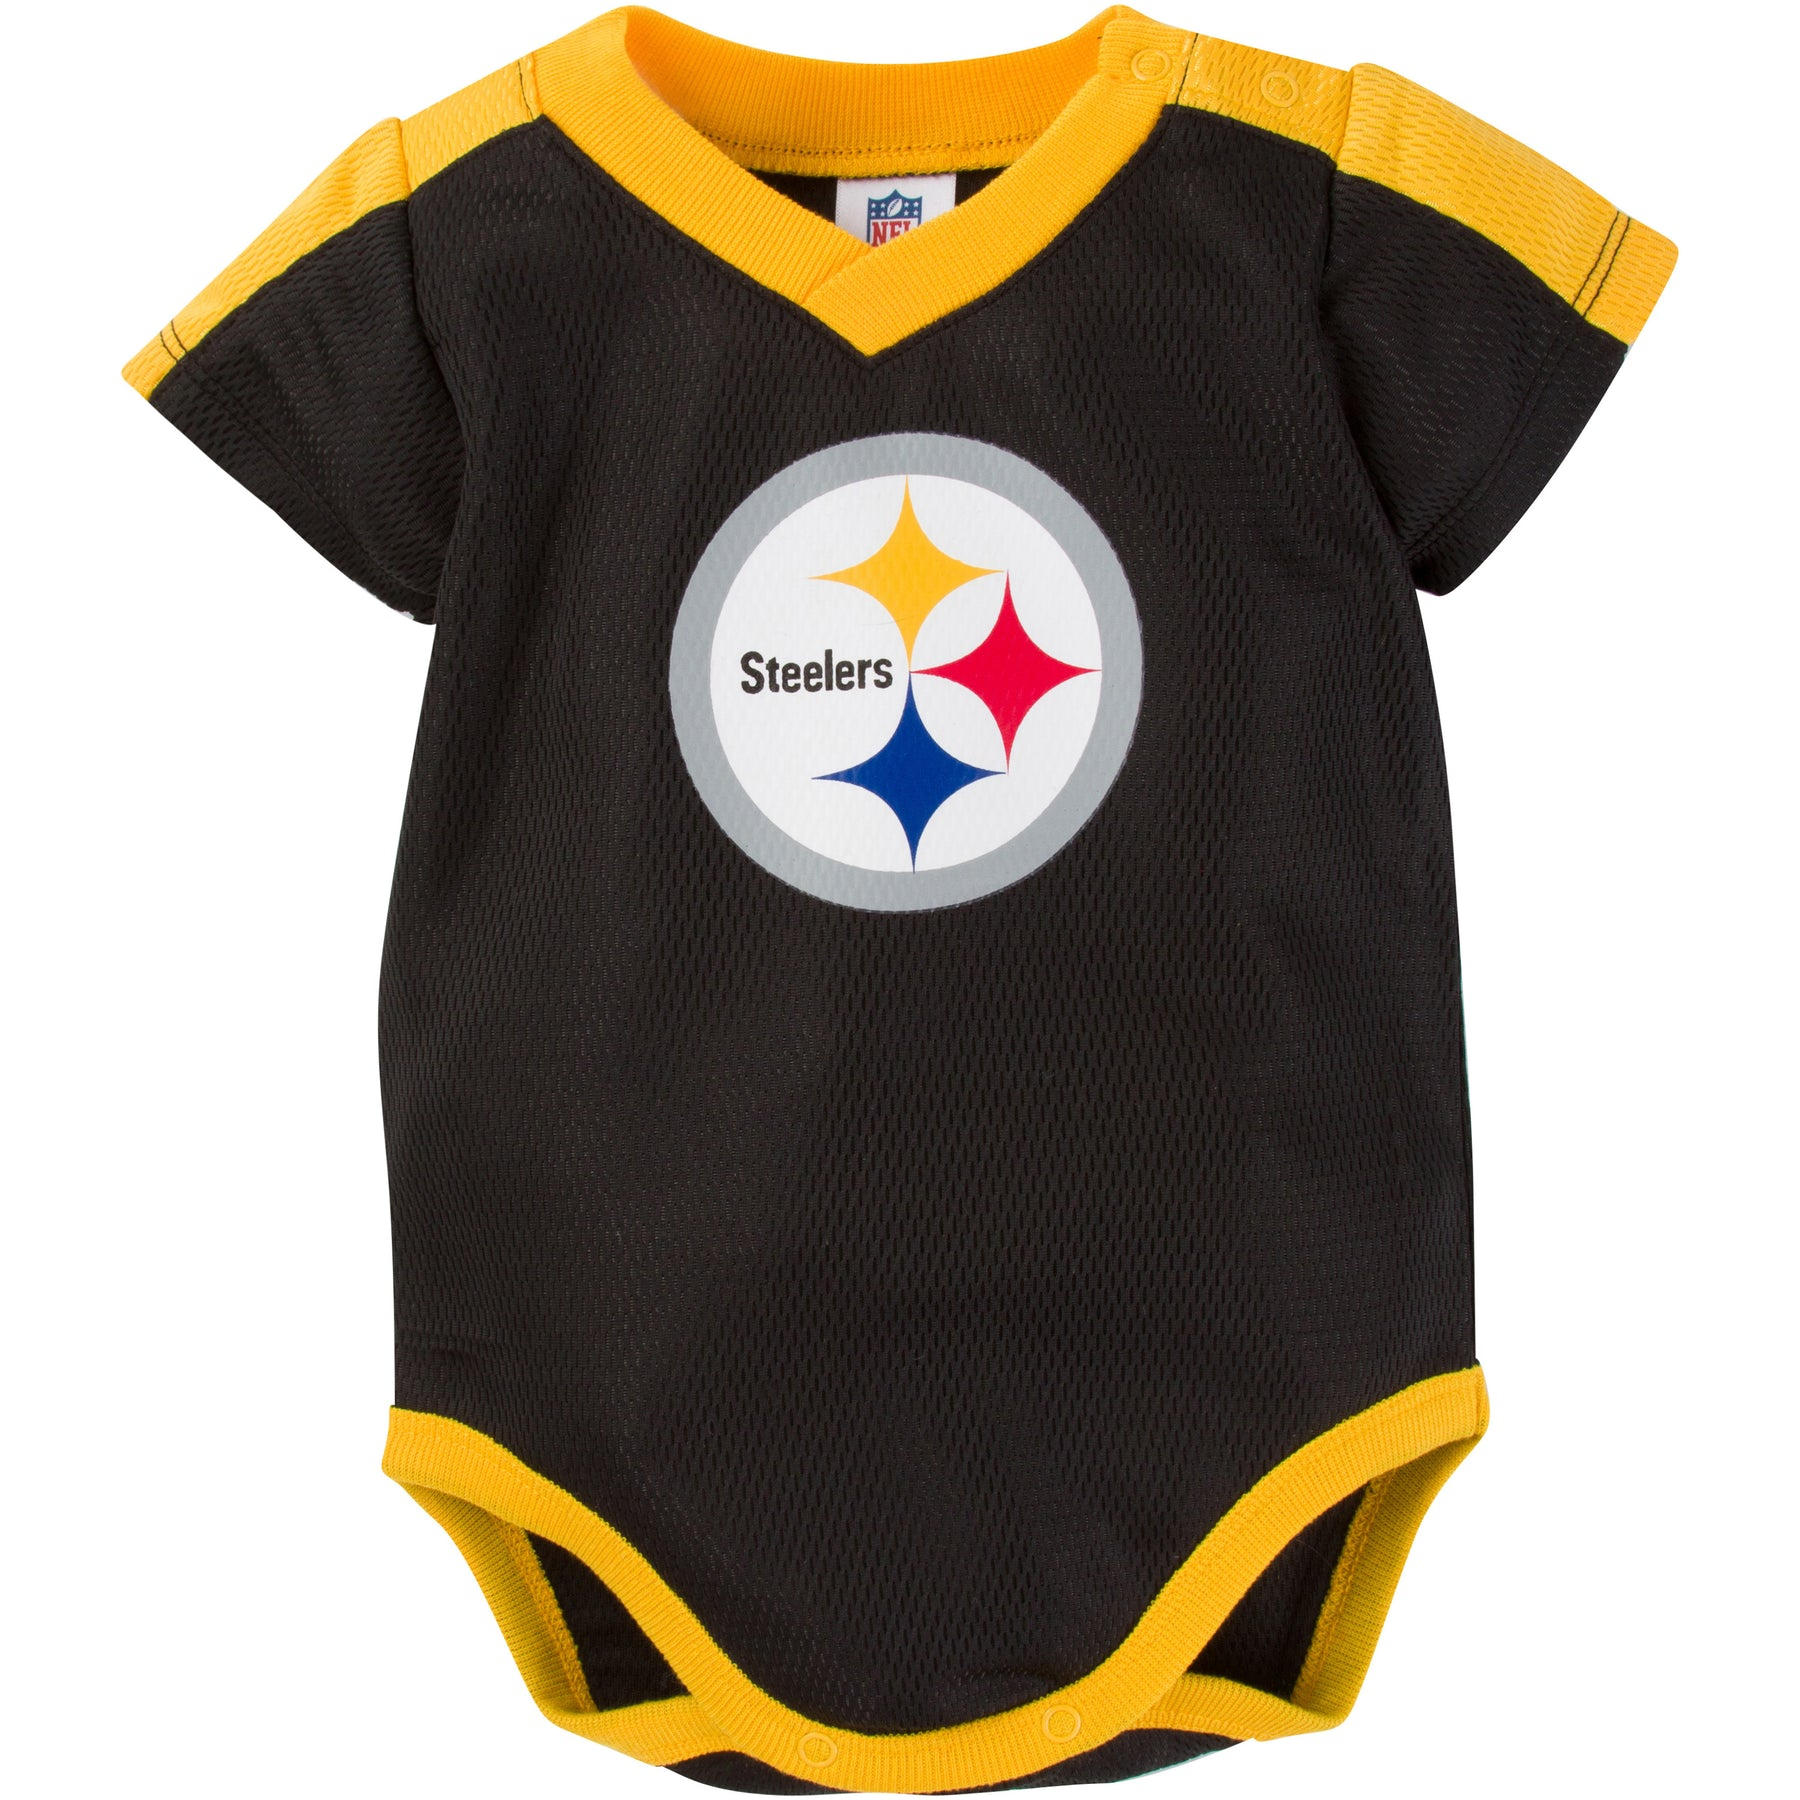 Steelers Baby Clothes BabyFans – babyfans